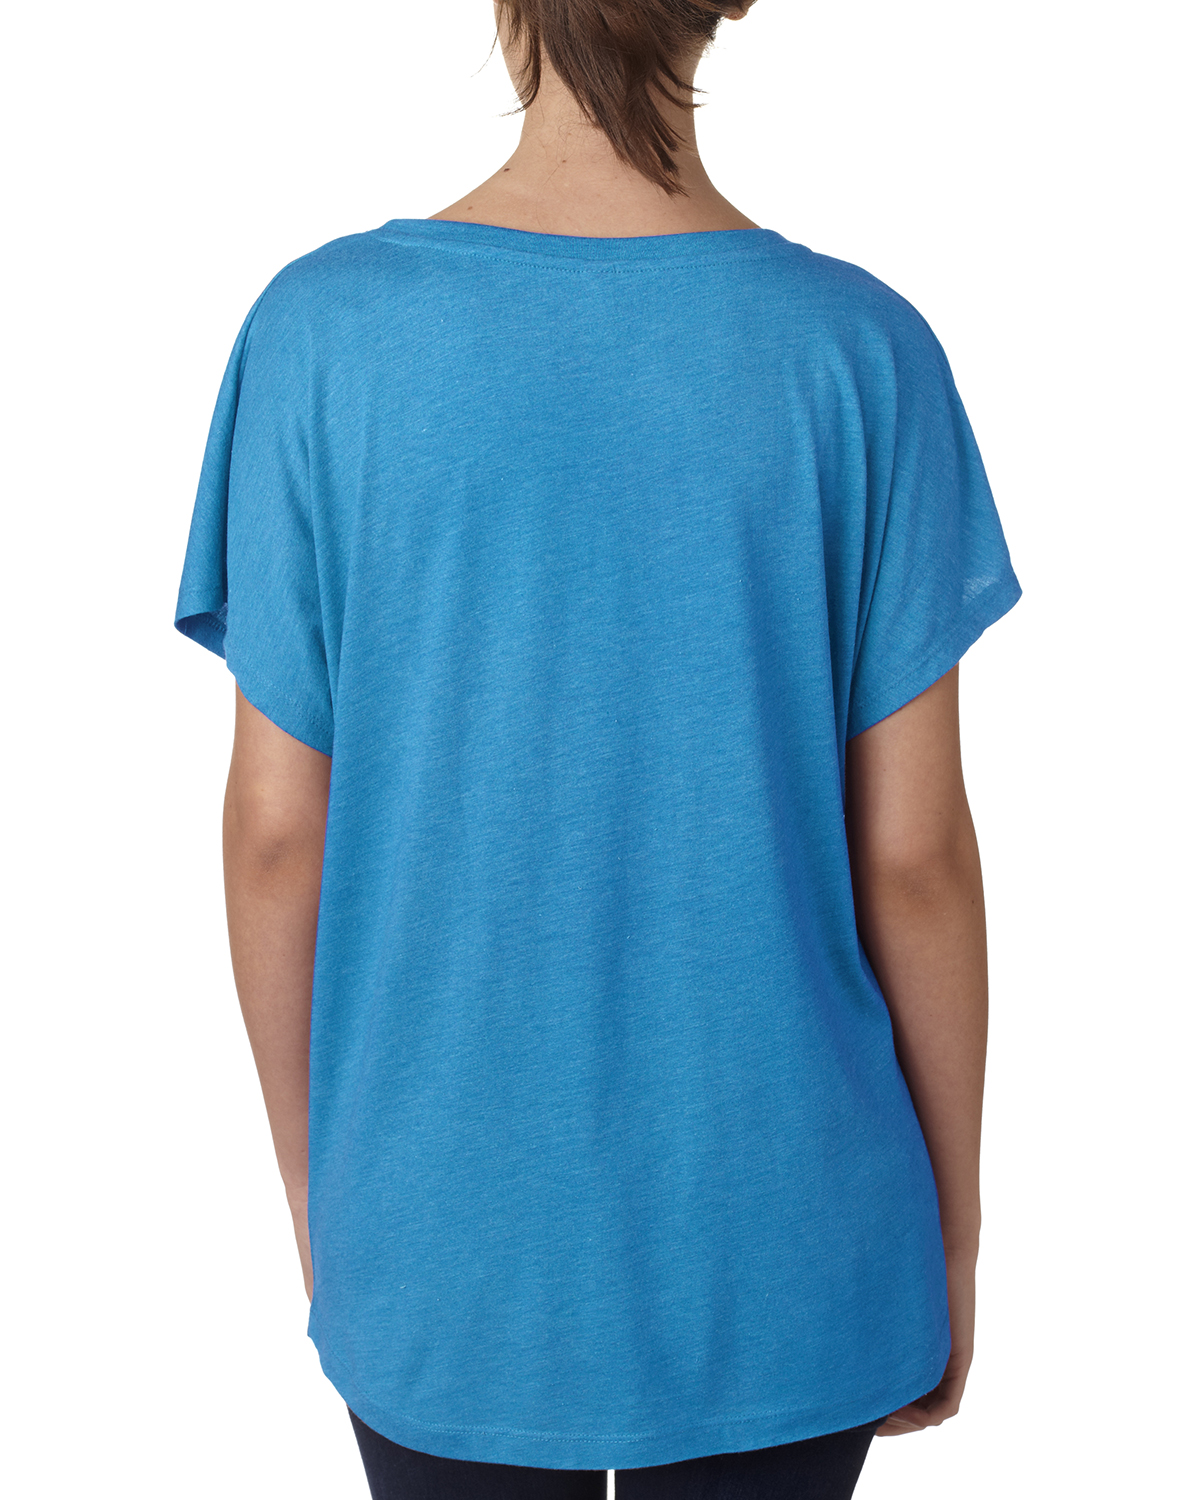 NEW-Next-Level-Junior-Fit-Triblend-Dolman-Sleeve-Relexed-Fit-T-Shirt-B-6760 thumbnail 48